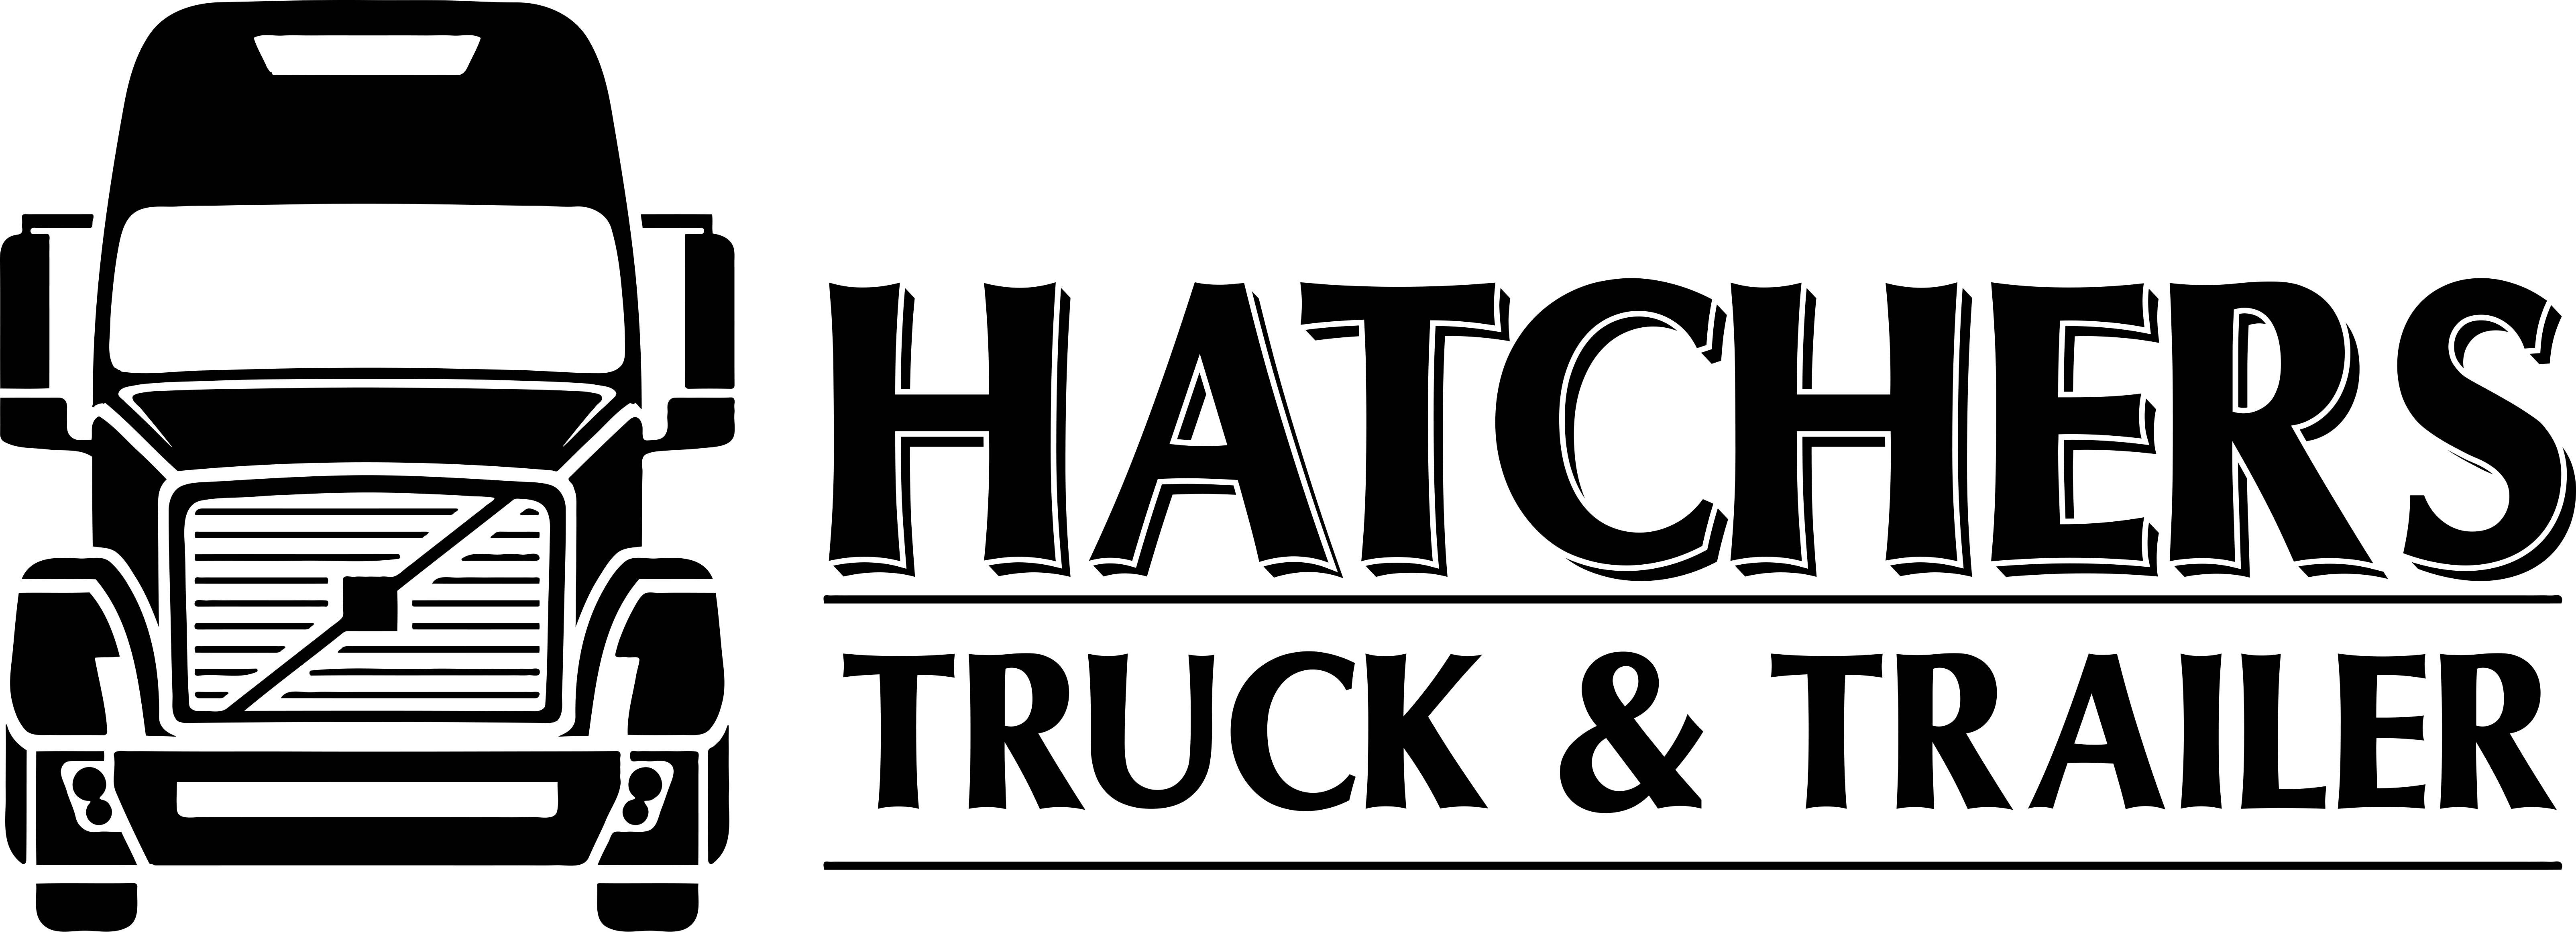 Hatcher's Truck & Trailer Repair